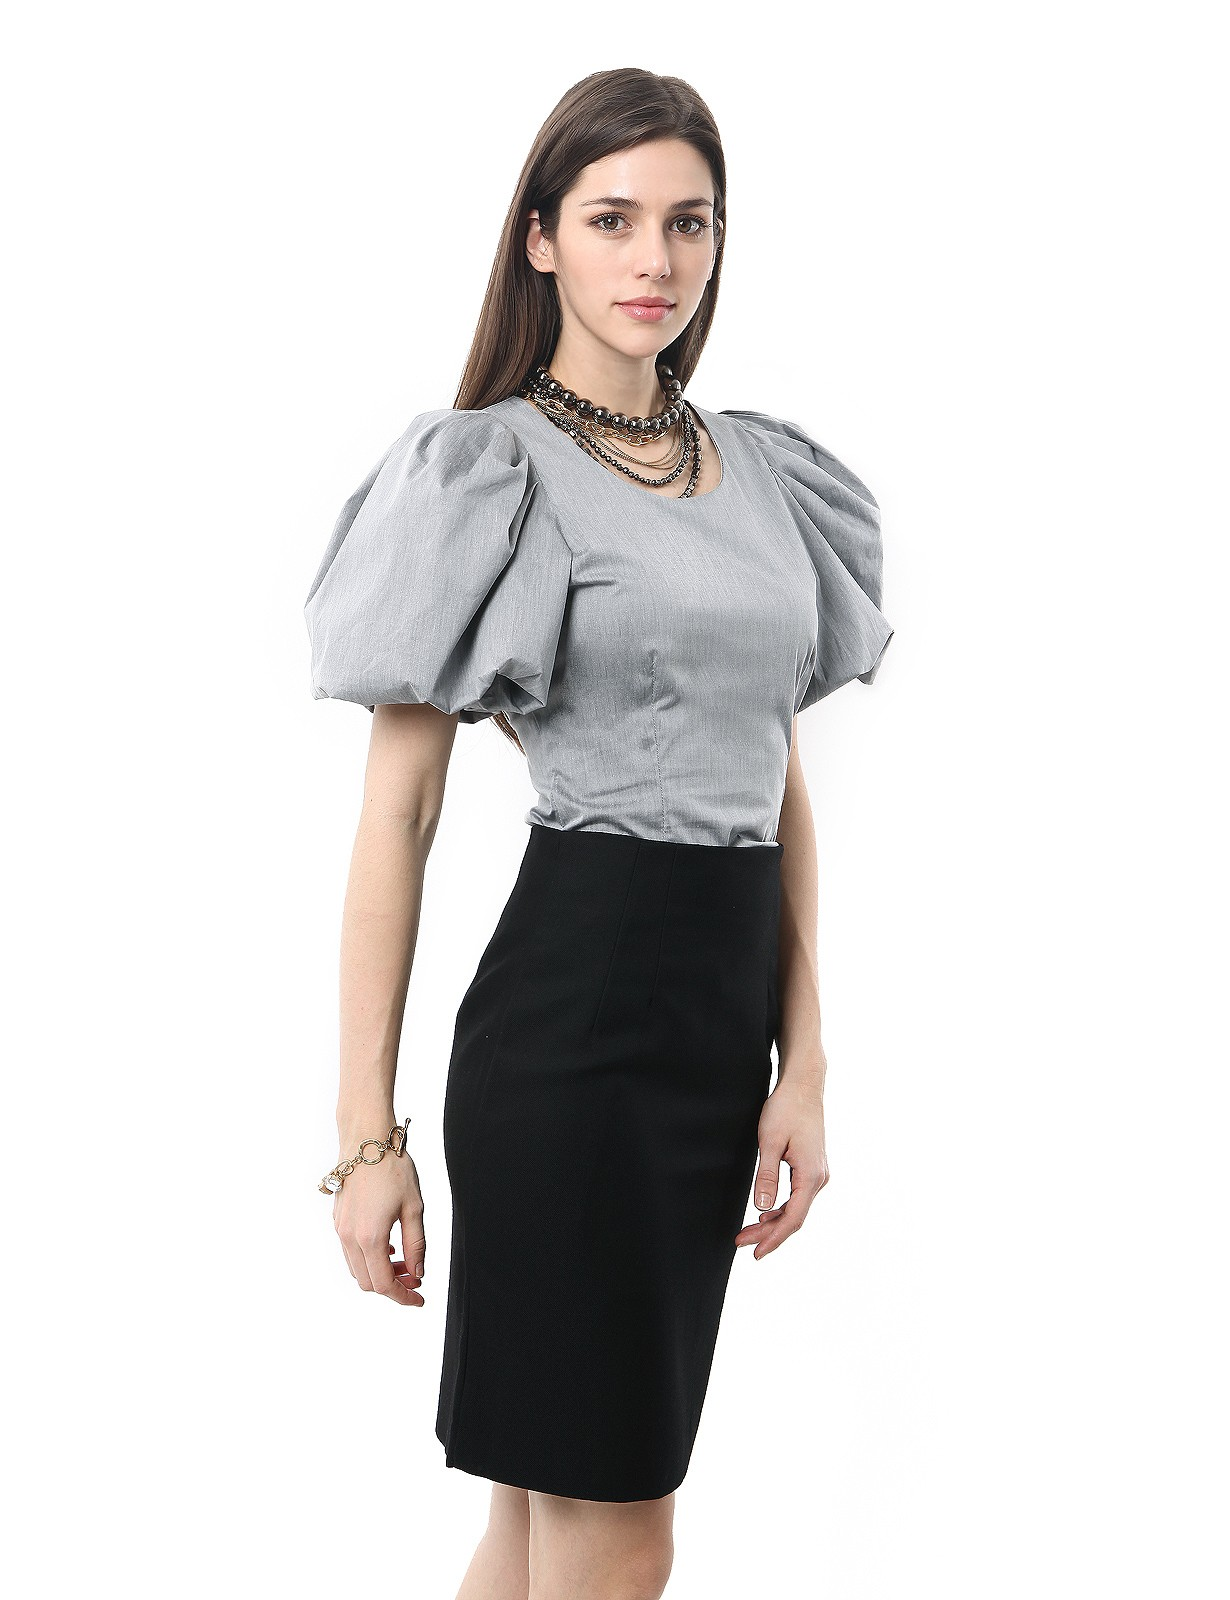 Winter  Fashion Styles Skirts And Blouses